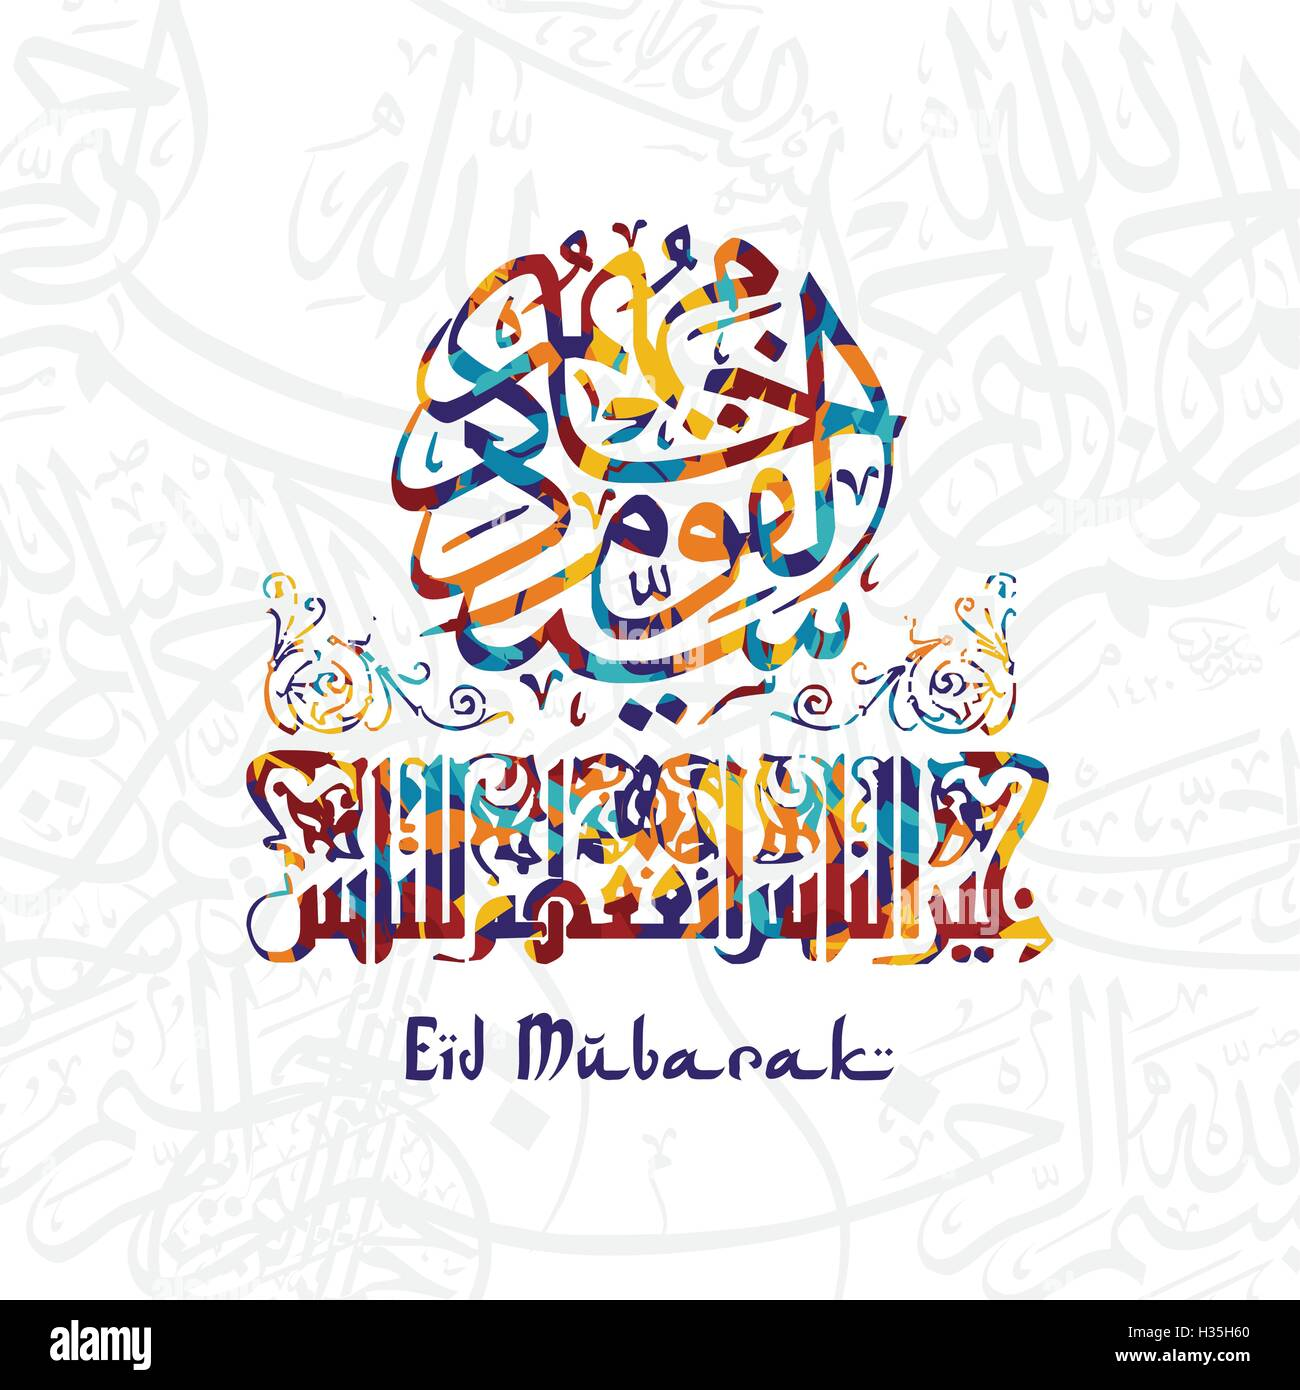 Happy eid mubarak greetings arabic calligraphy art stock vector art happy eid mubarak greetings arabic calligraphy art m4hsunfo